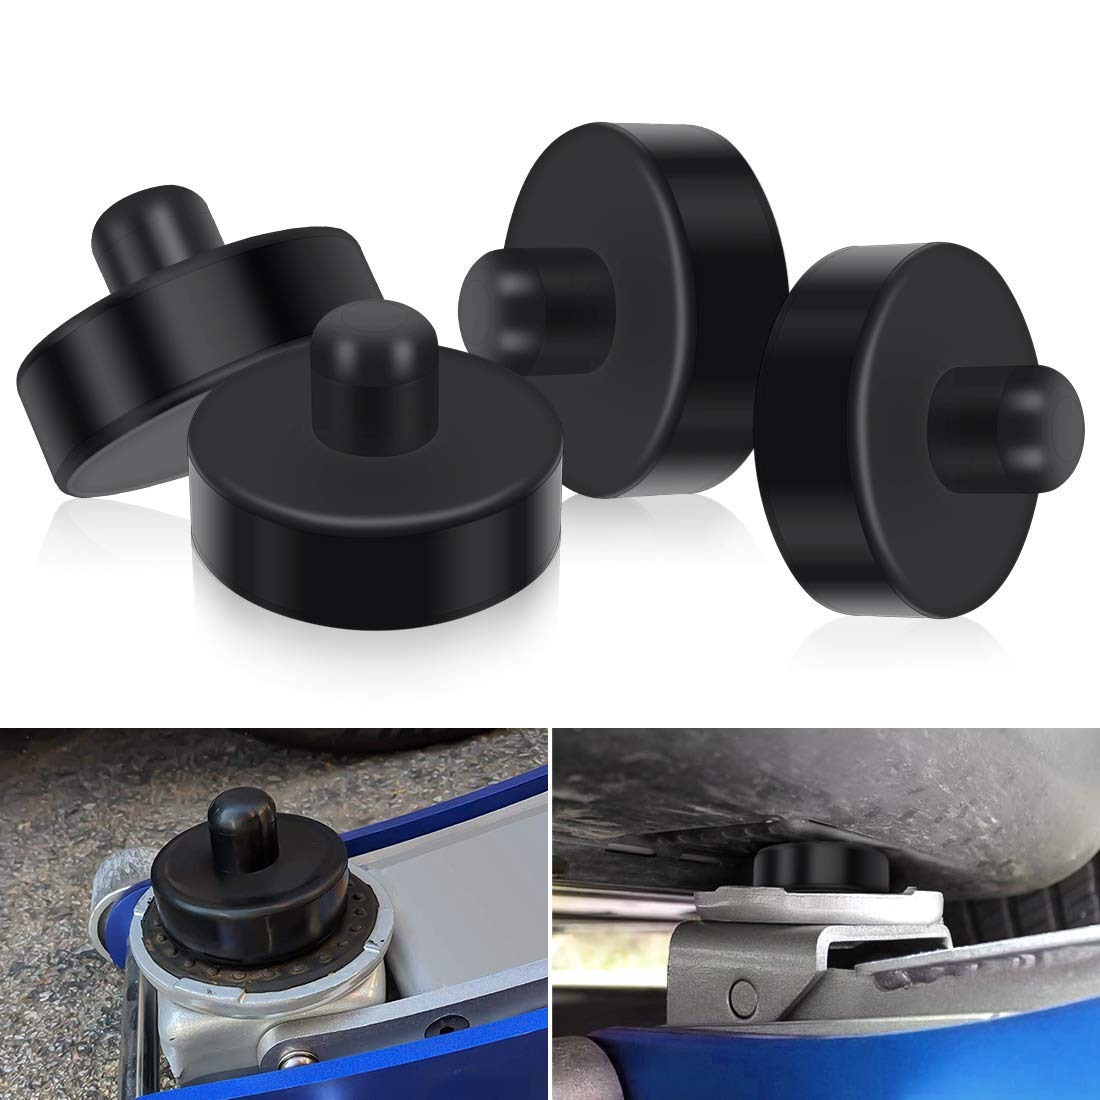 4 Pack Protects Car Jack from Damaging Tesla Battery QUNSUN Car Jack Lift Pad Adapter Tool Rubber Jack Pads Fits Tesla Model 3 for Safely Raising Vehicle